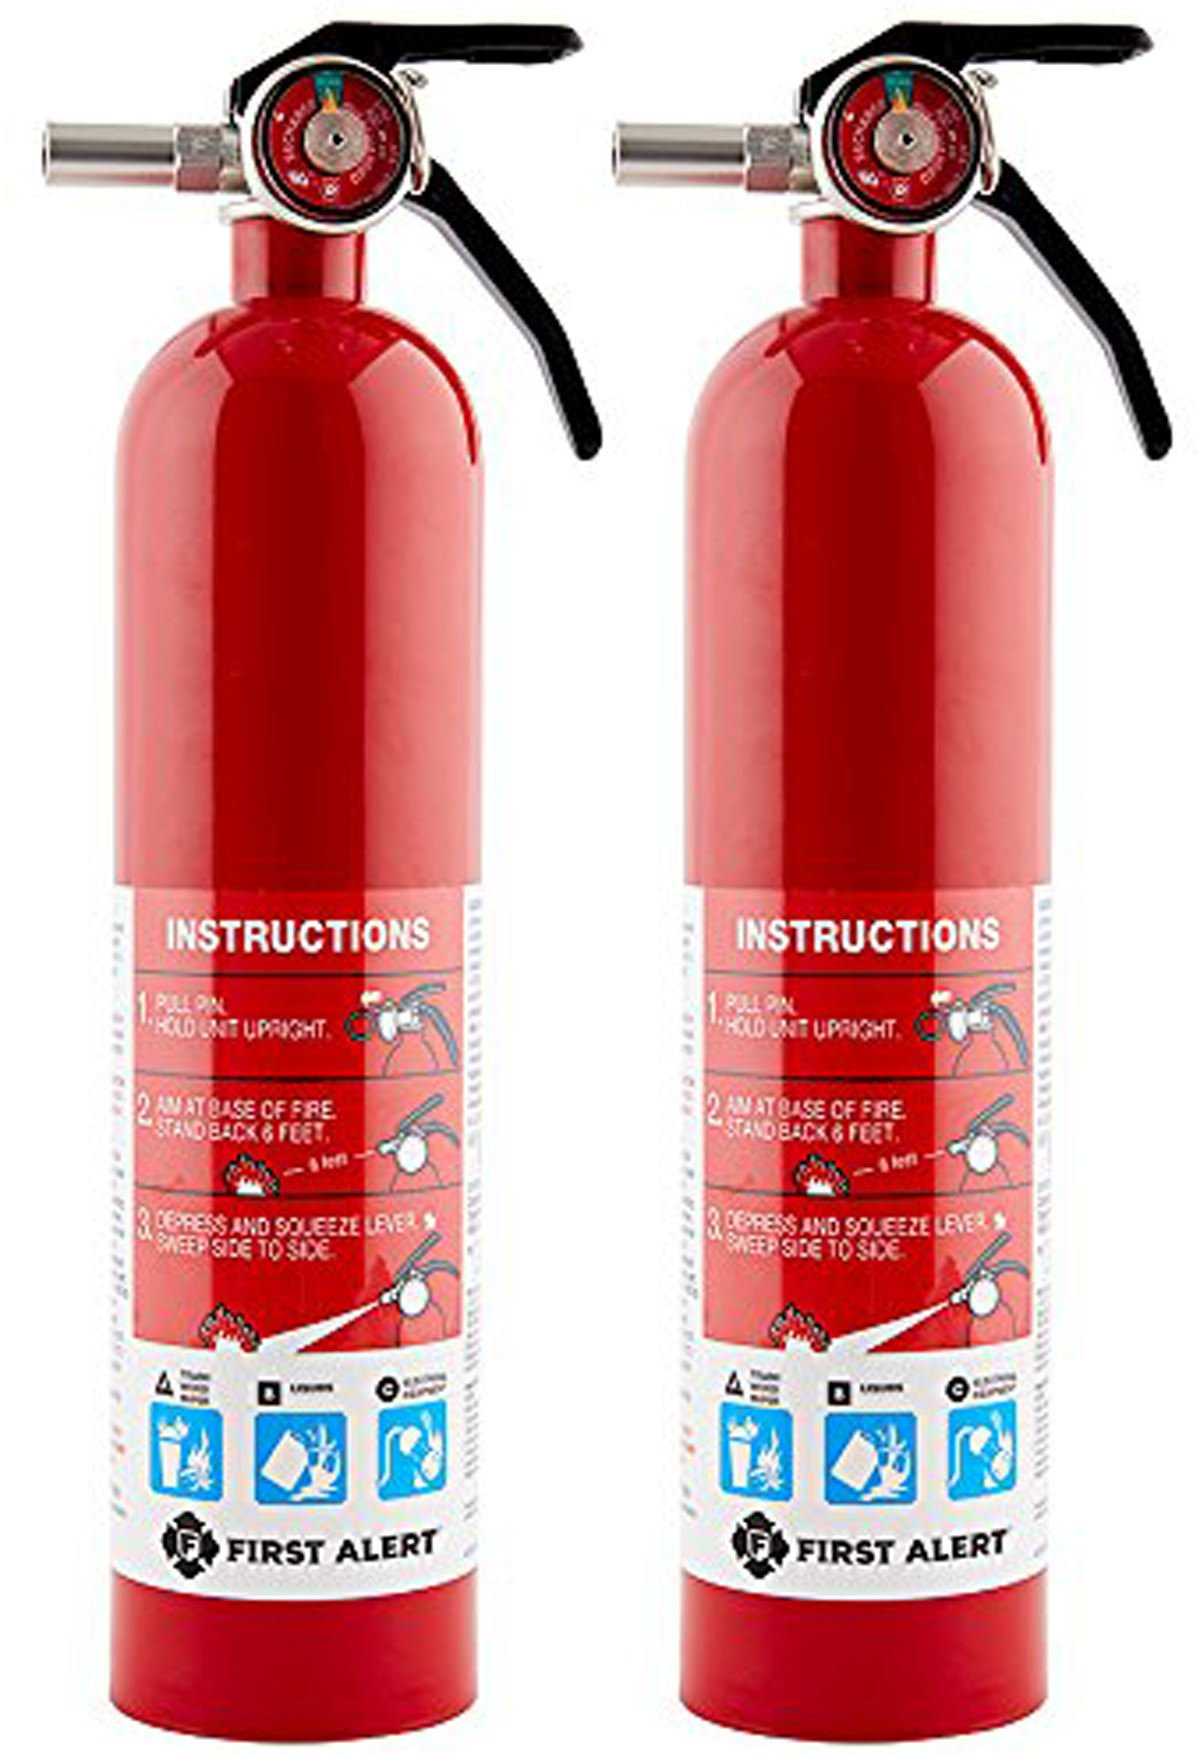 First Alert SDFAEBQ Rechargable Standard Home Fire Extinguisher, Red, 2 Pack